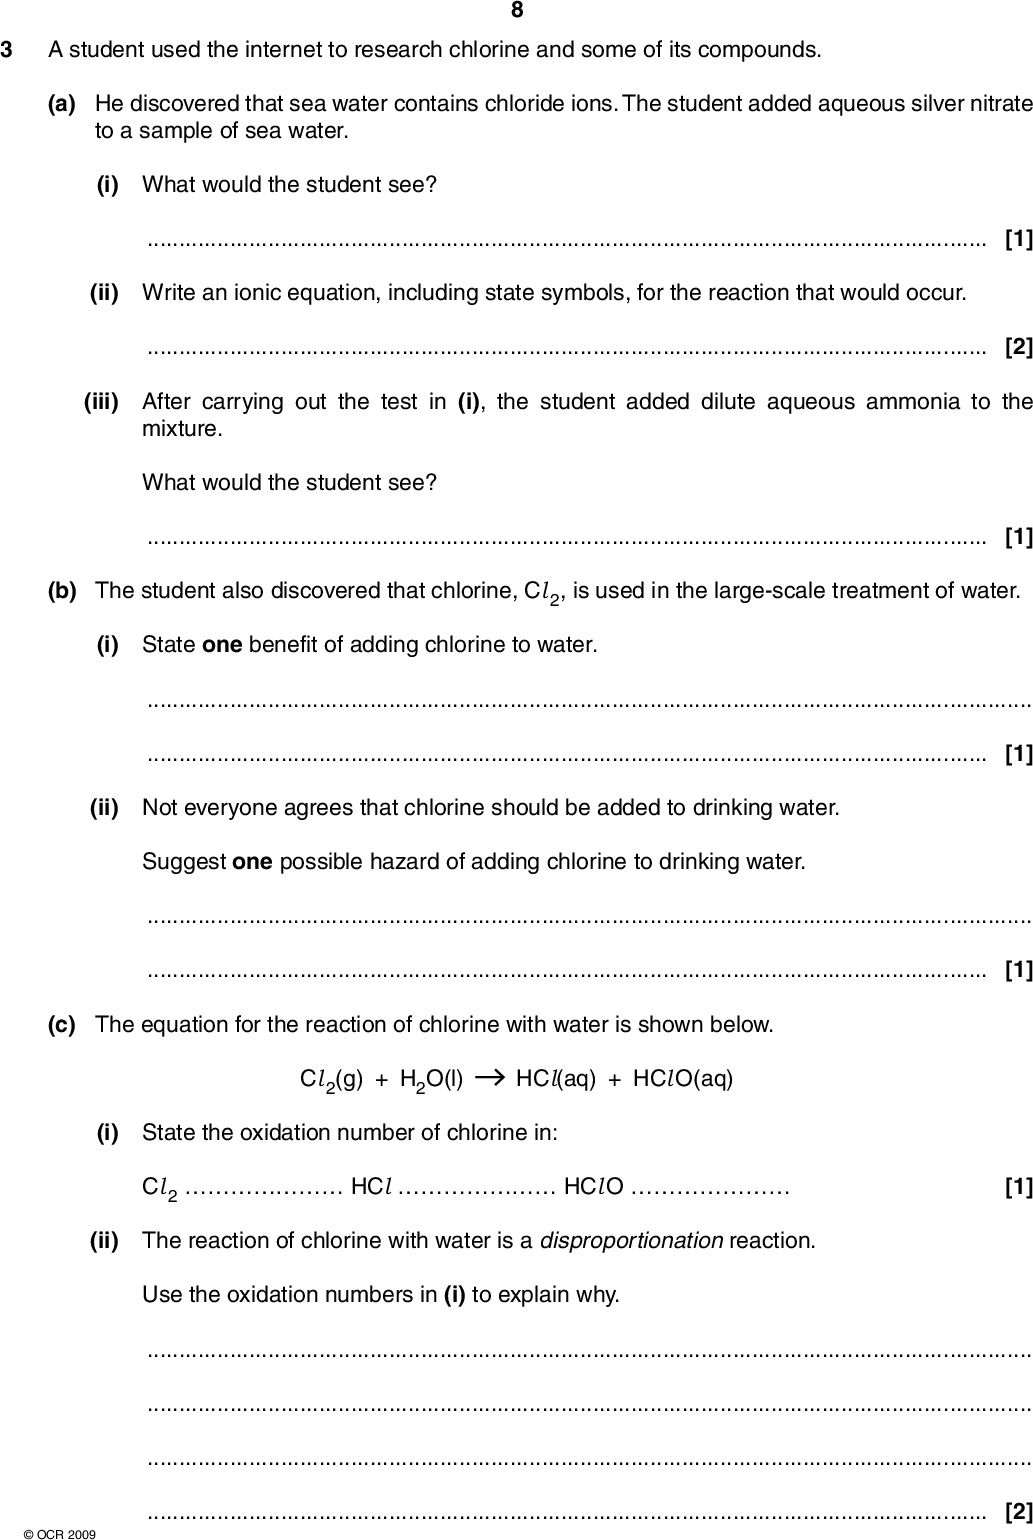 3 A student used the internet to research chlorine and some of its compounds. (a) He discovered that sea water contains chloride ions. The student added aqueous silver nitrate to a sample of sea water. (i) What would the student see?[1] (ii) Write an ionic equation, including state symbols, for the reaction that would occur.[2] (iii) After carrying out the test in (i), the student added dilute aqueous ammonia to the mixture. What would the student see?[1] (b) The student also discovered that chlorine, Cl 2, is used in the large-scale treatment of water. (i) State one benefit of adding chlorine to water.[1] (ii) Not everyone agrees that chlorine should be added to drinking water. Suggest one possible hazard of adding chlorine to drinking water.[1] (c) The equation for the reaction of chlorine with water is shown below. Cl 2(g) + H2O(l) HCl(aq) + HCl O(aq) (i) State the oxidation number of chlorine in: Cl 2HClHCl O[1] (ii) The reaction of chlorine with water is a disproportionation reaction. Use the oxidation numbers in (i) to explain why.[2]OCR 2009<br />  (iii) Chlorine reacts with sodium hydroxide to form bleach in another disproportionation reaction. Write an equation for this reaction.[1] (d) Two other chlorine compounds of chlorine are chlorine dioxide and chloric(V) acid. (i) Chlorine dioxide, Cl O2, is used as a bleaching agent in both the paper and the flour industry. When dry, Cl O2 decomposes explosively to form oxygen and chlorine. Construct an equation for the decomposition of Cl O2.[1] (ii) Chloric(V) acid has the following percentage composition by mass: H, 1.20%; Cl, 42.0%; O, 56.8%. Using this information, calculate the empirical formula of chloric(V) acid. Show all of your working. (iii) What does (V) represent in chloric(V) acid? empirical formula =[2][1] [Total: 14]OCR 2009 Turn over<br />